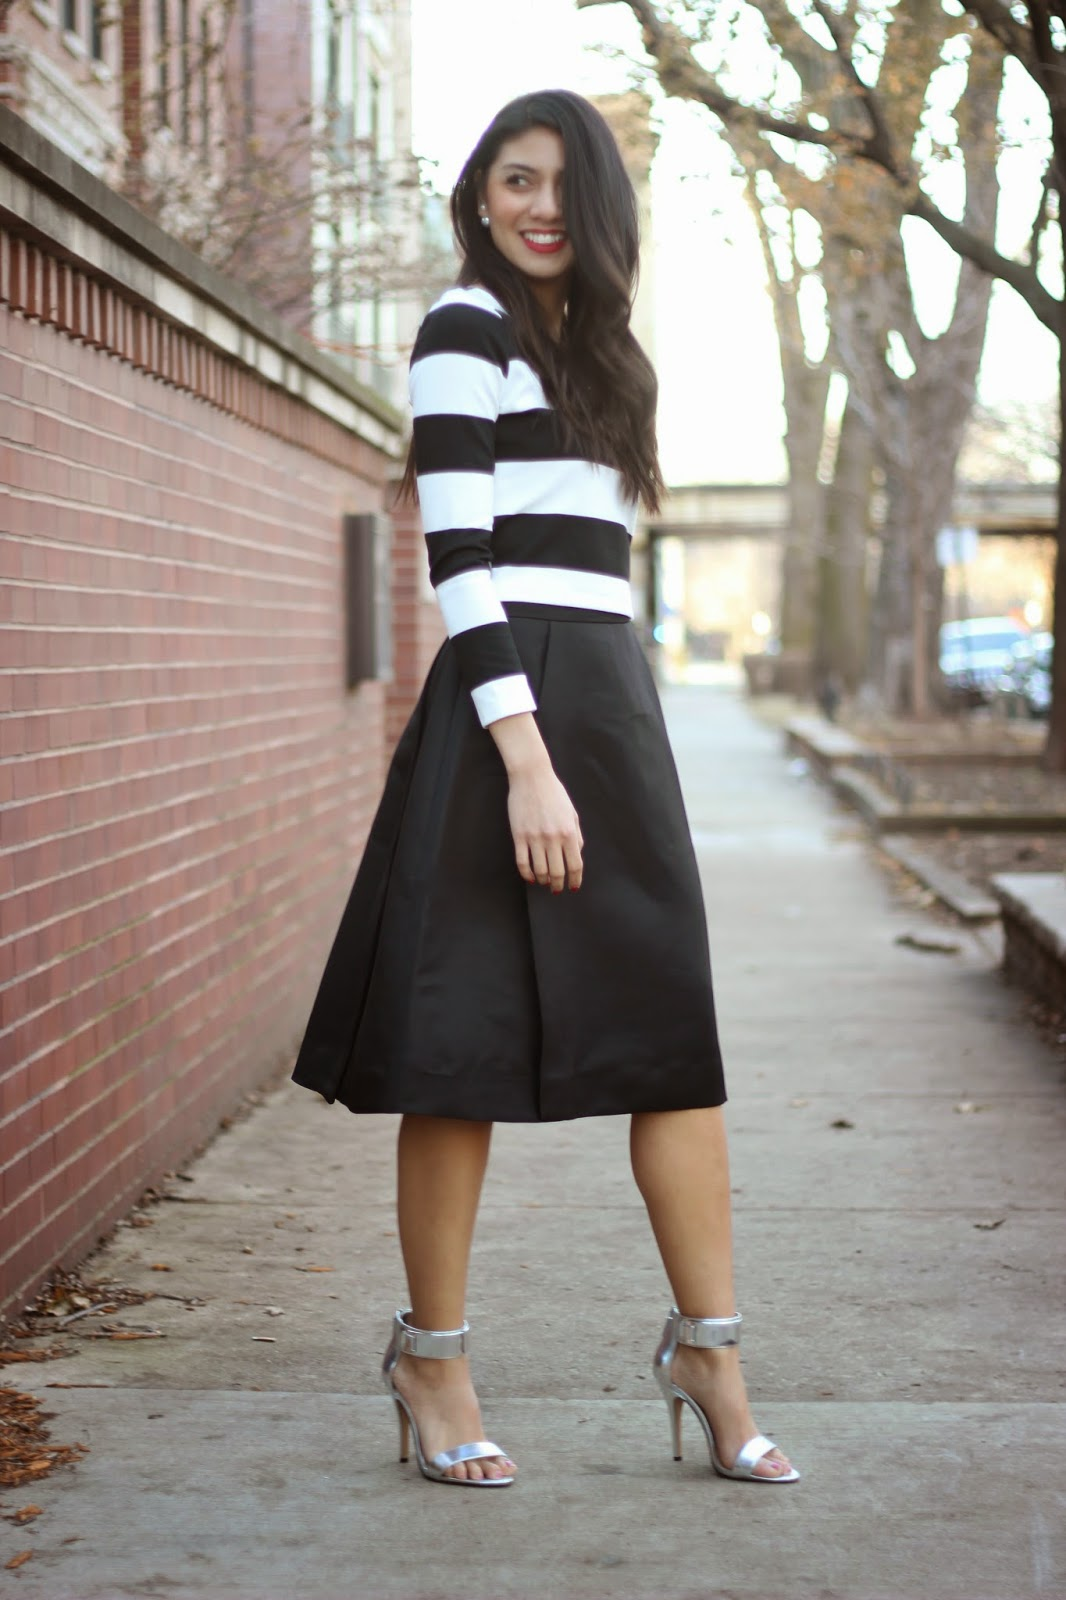 Street style tip of the day: Parisian inspired